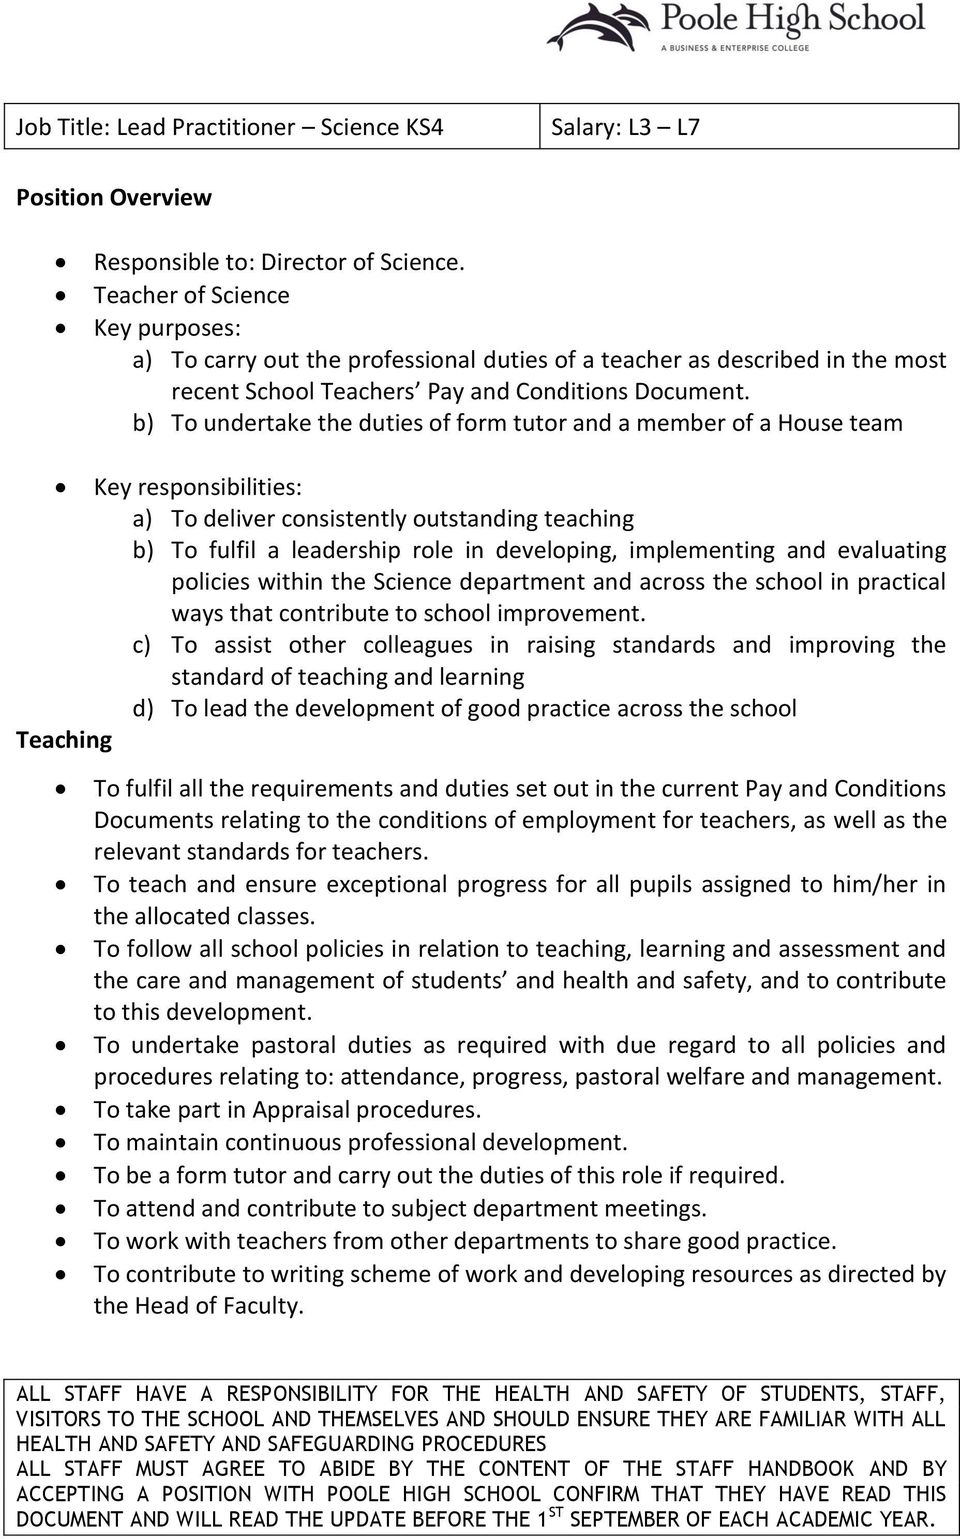 b) To undertake the duties of form tutor and a member of a House team Key responsibilities: a) To deliver consistently outstanding teaching b) To fulfil a leadership role in developing, implementing